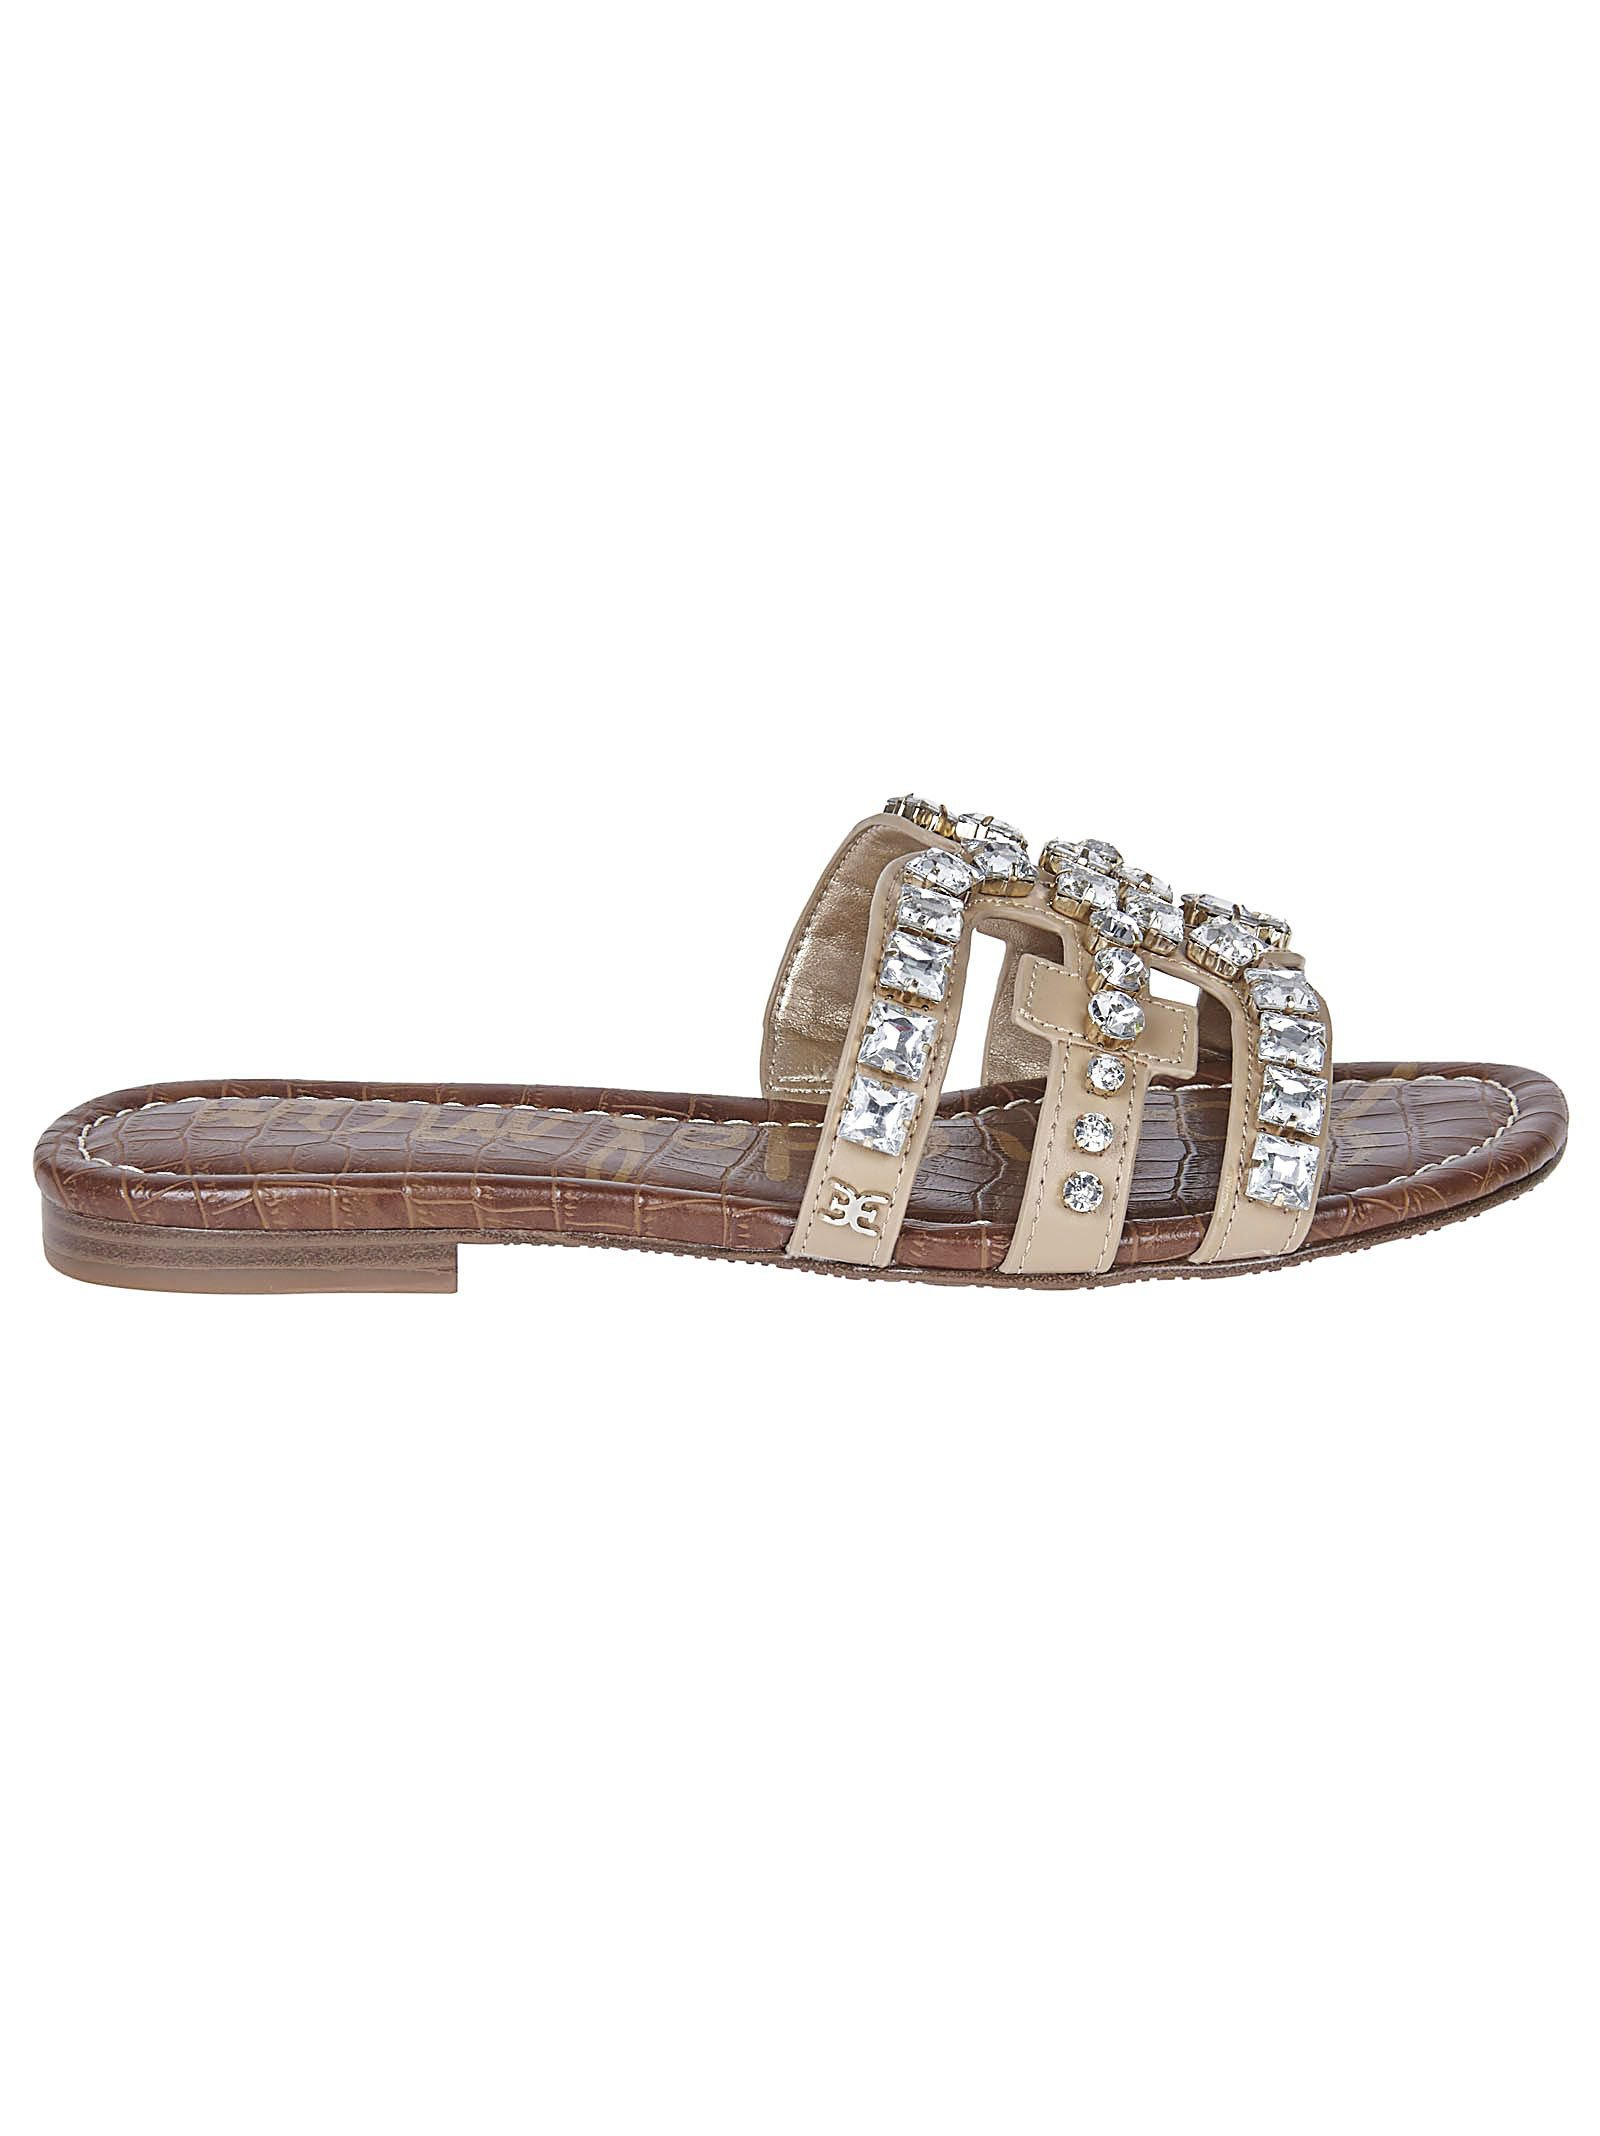 Sam Edelman Crystal Embellished Sandals